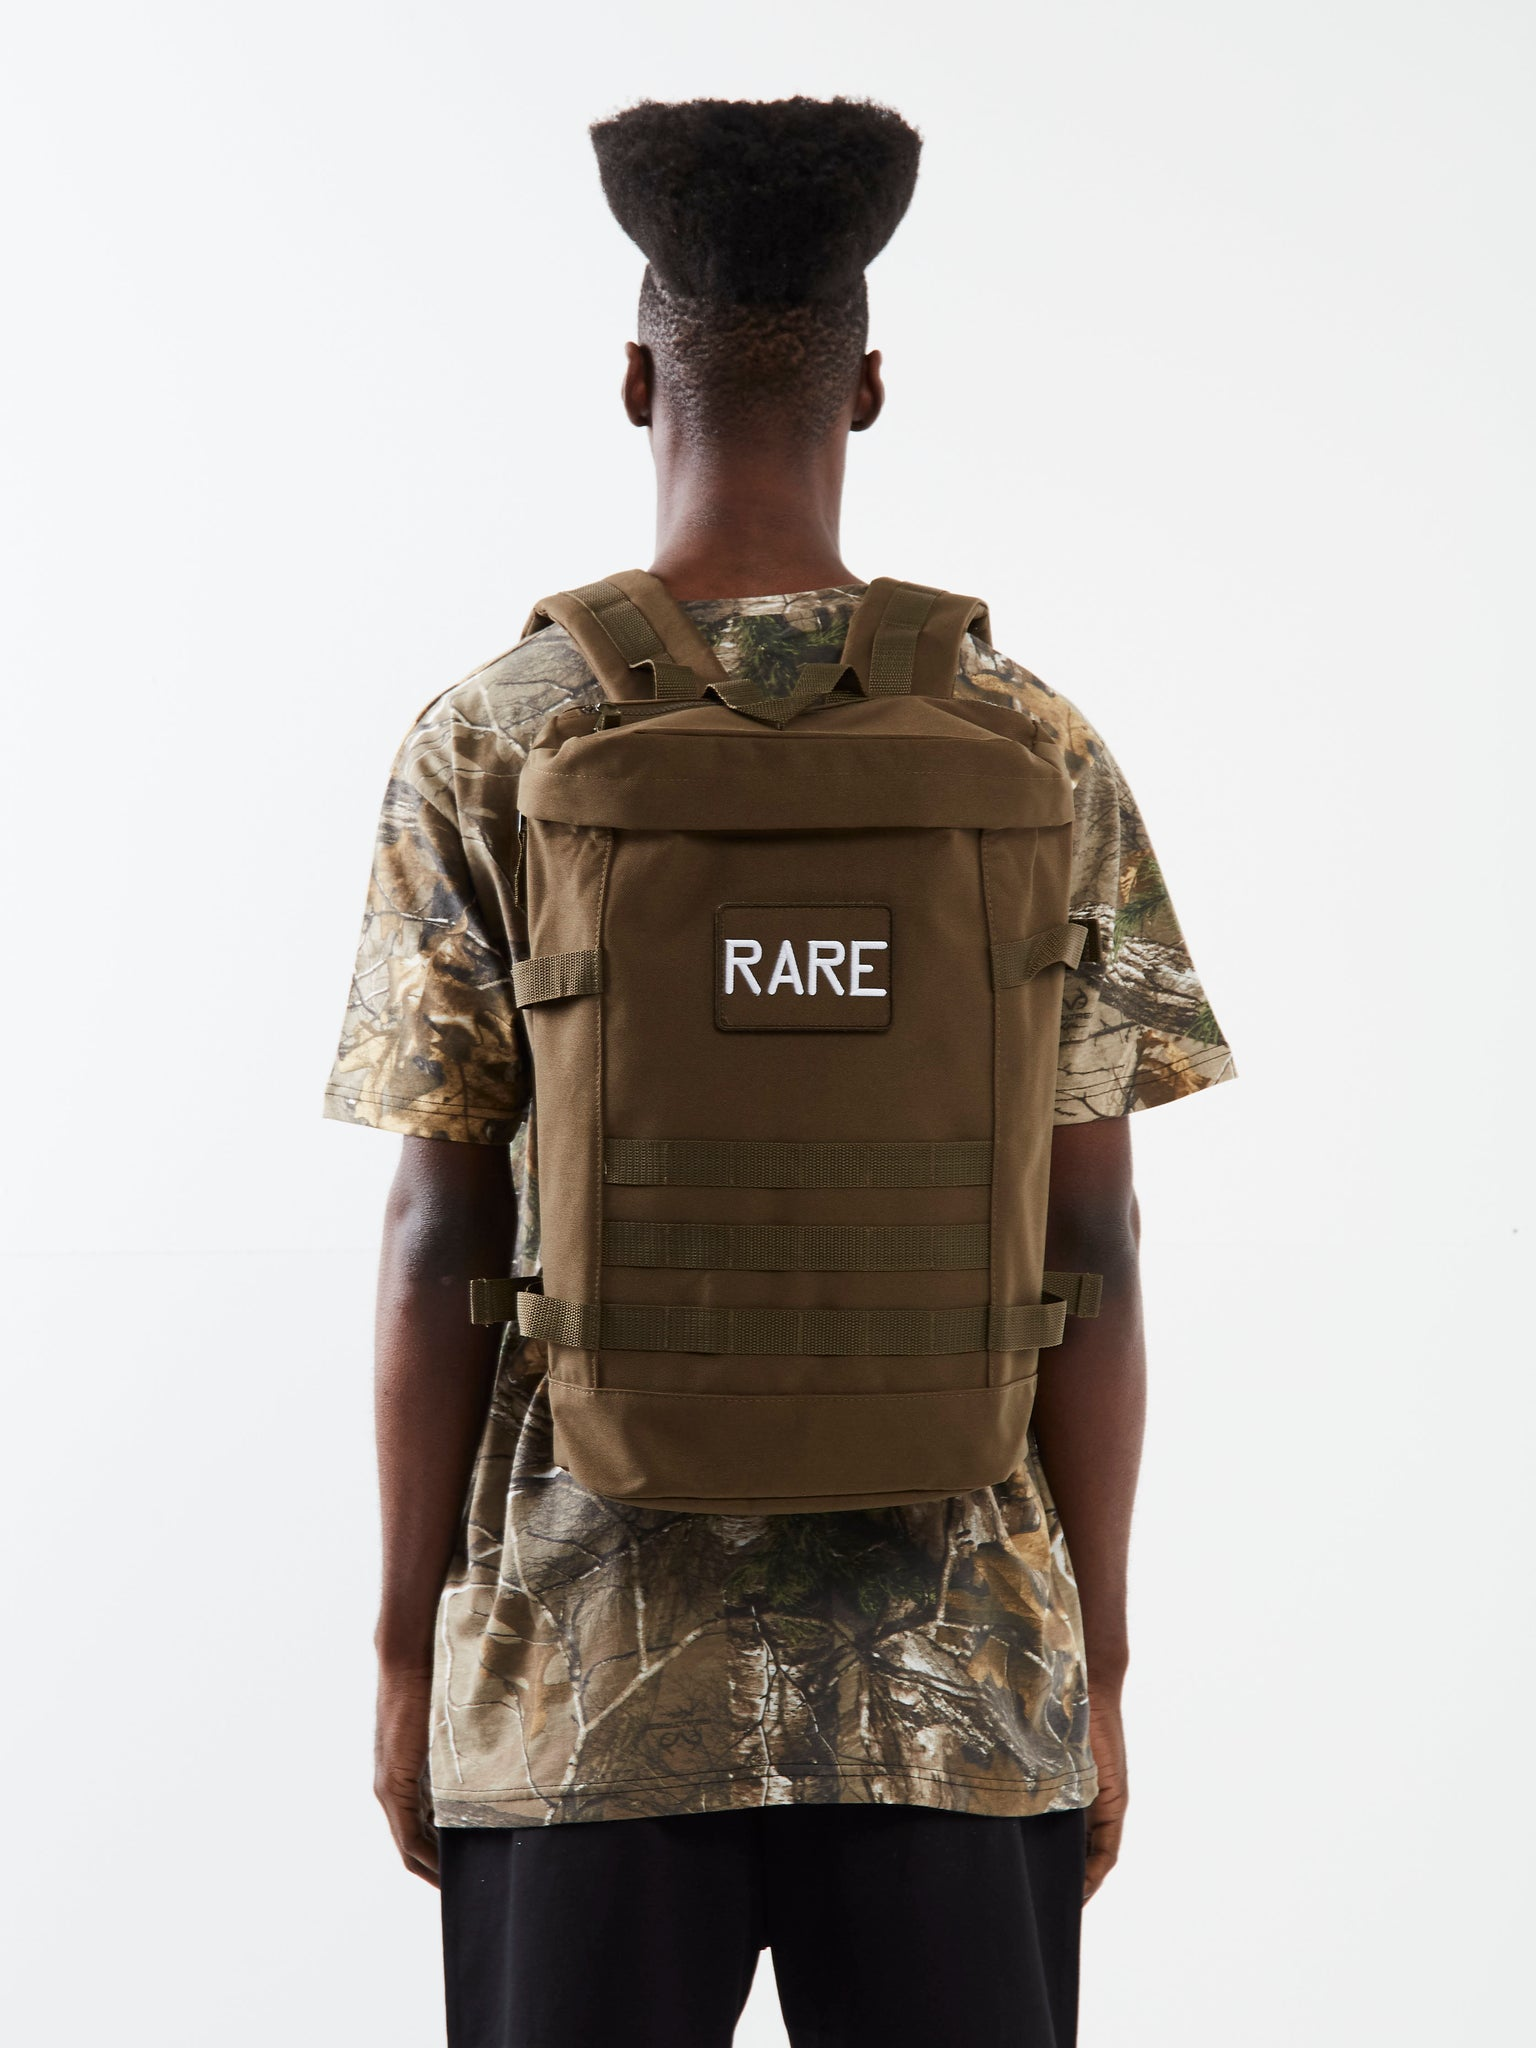 Combat Ready Green Utility Backpack